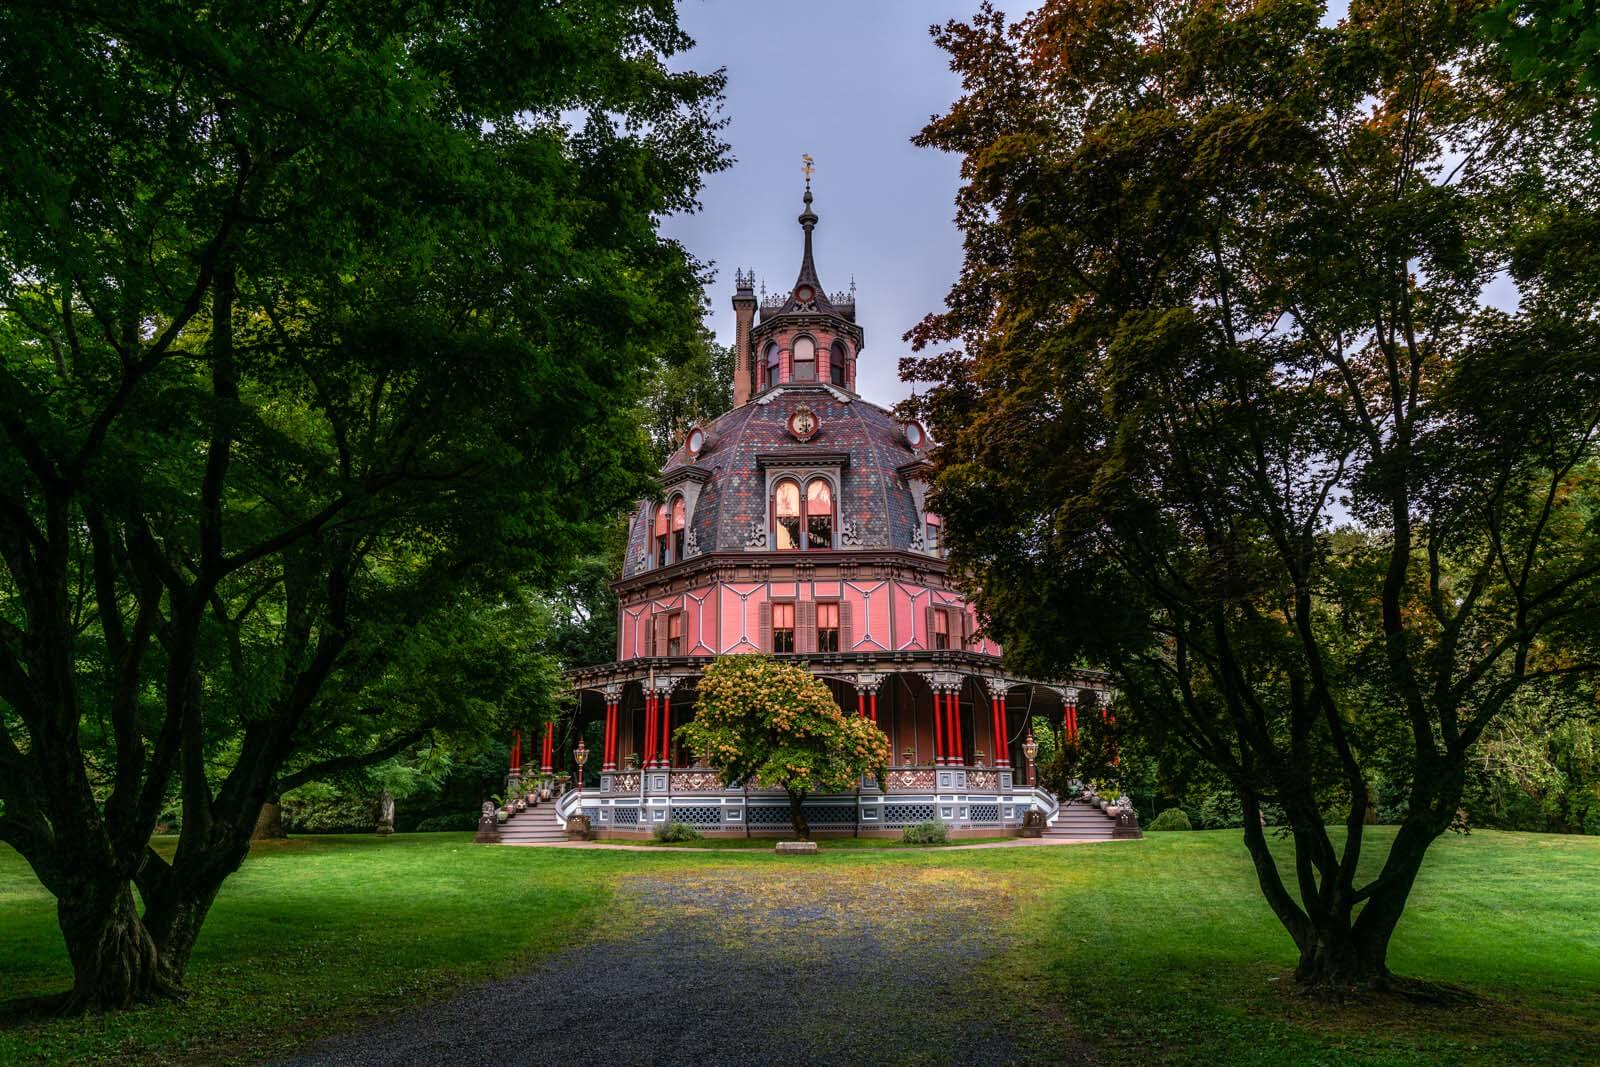 The Armour Stiner Octagon House in Tarrytown New York